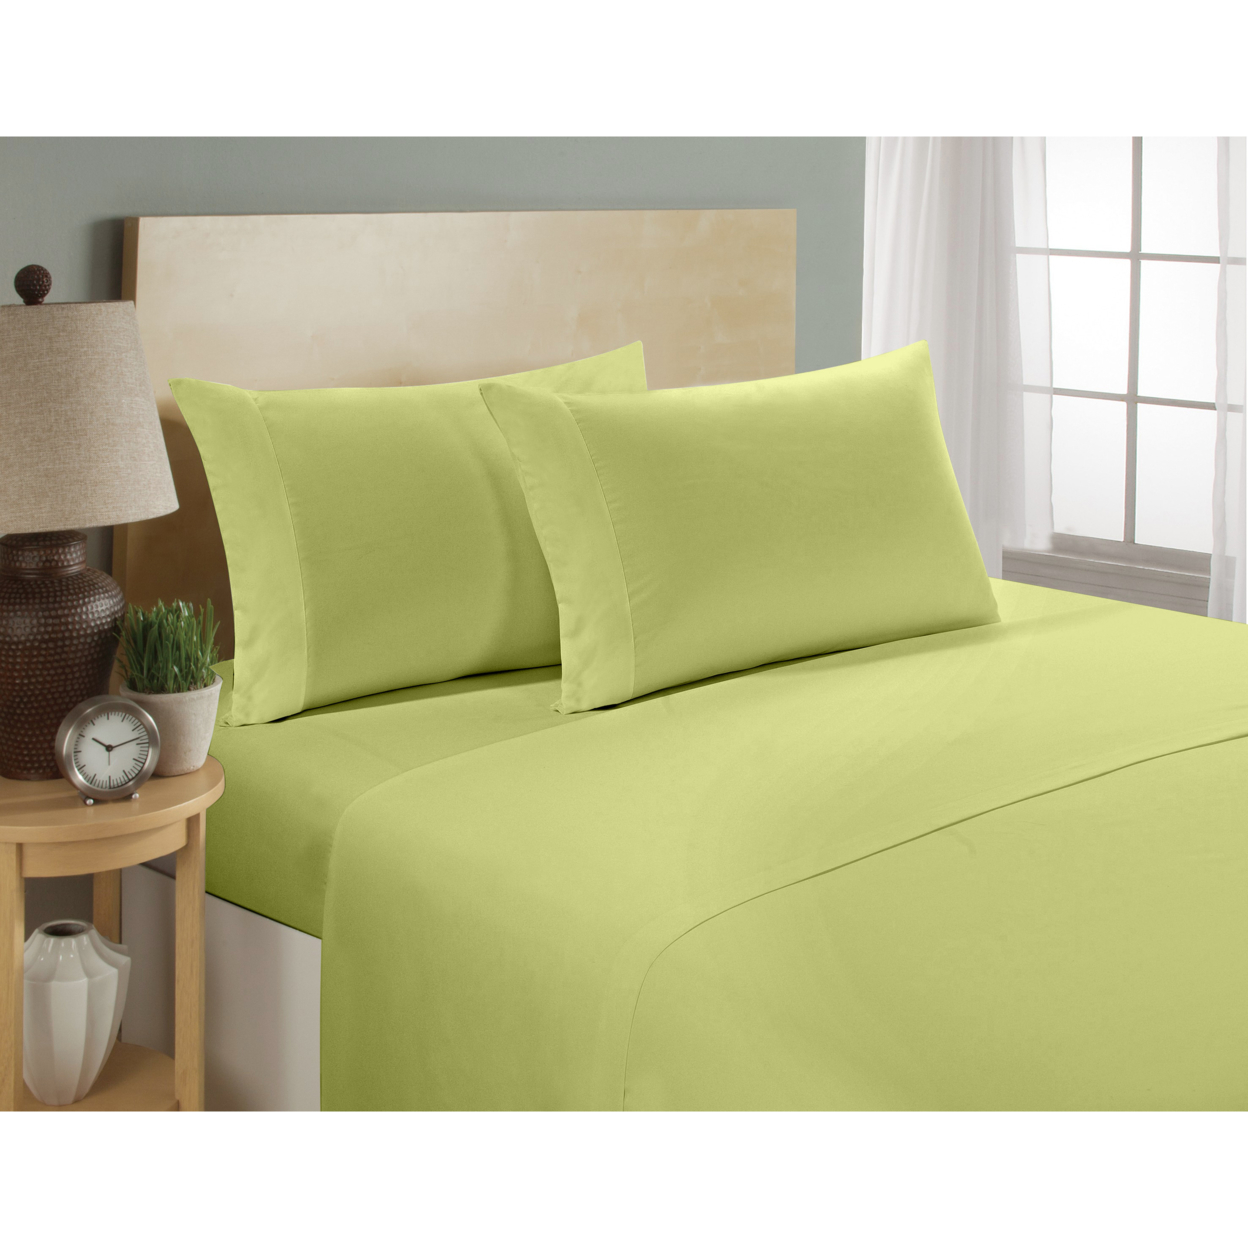 4 Piece: Ultra Soft 1800 Series Bamboo Bed Sheets (6 Colors) – Twin, Sage